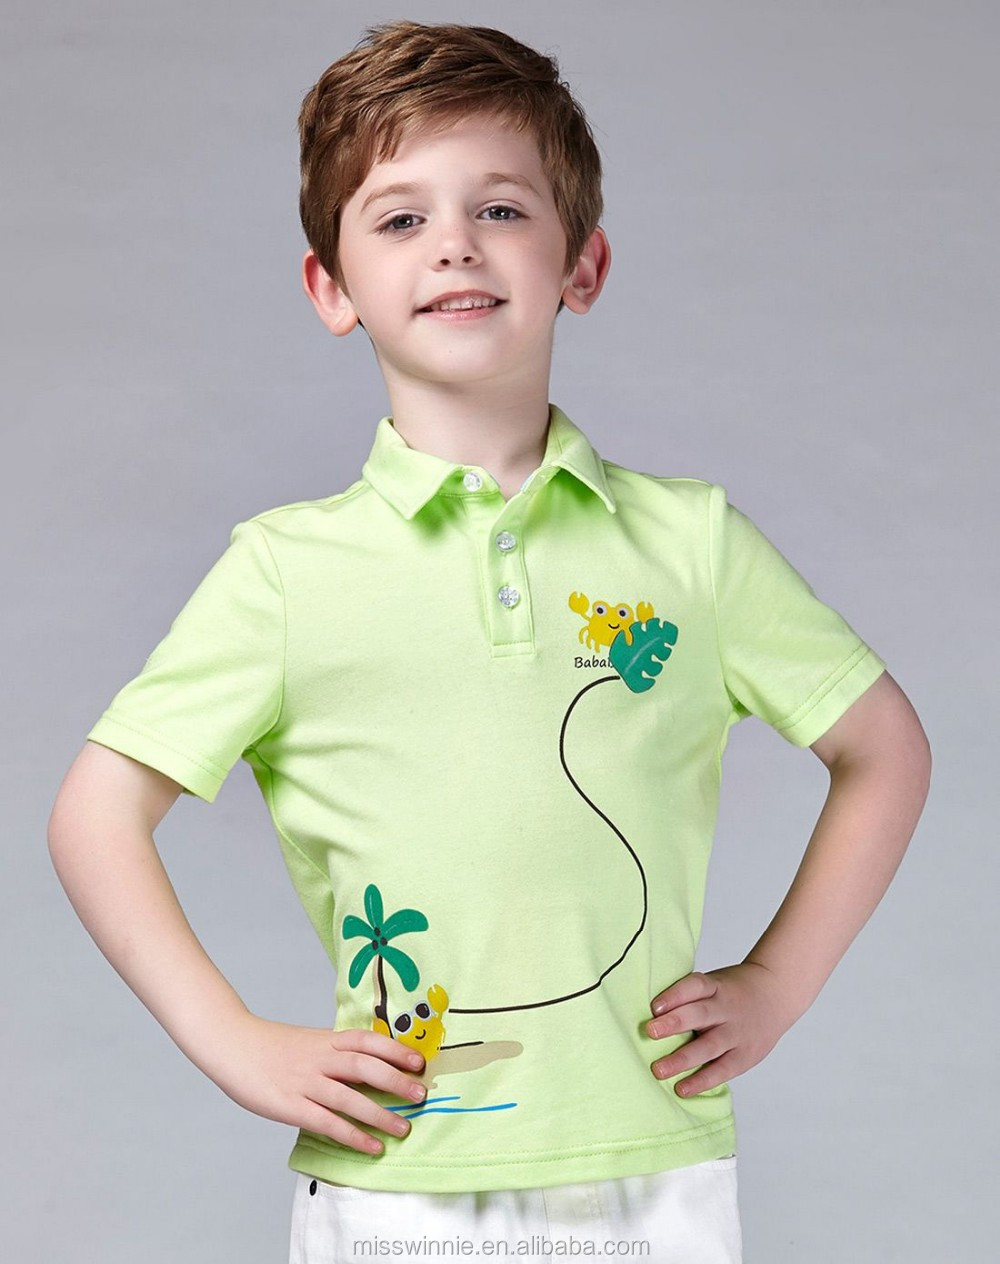 Kids Clothing Suppliers China New Custom Polo Shirt 100% Cotton ...